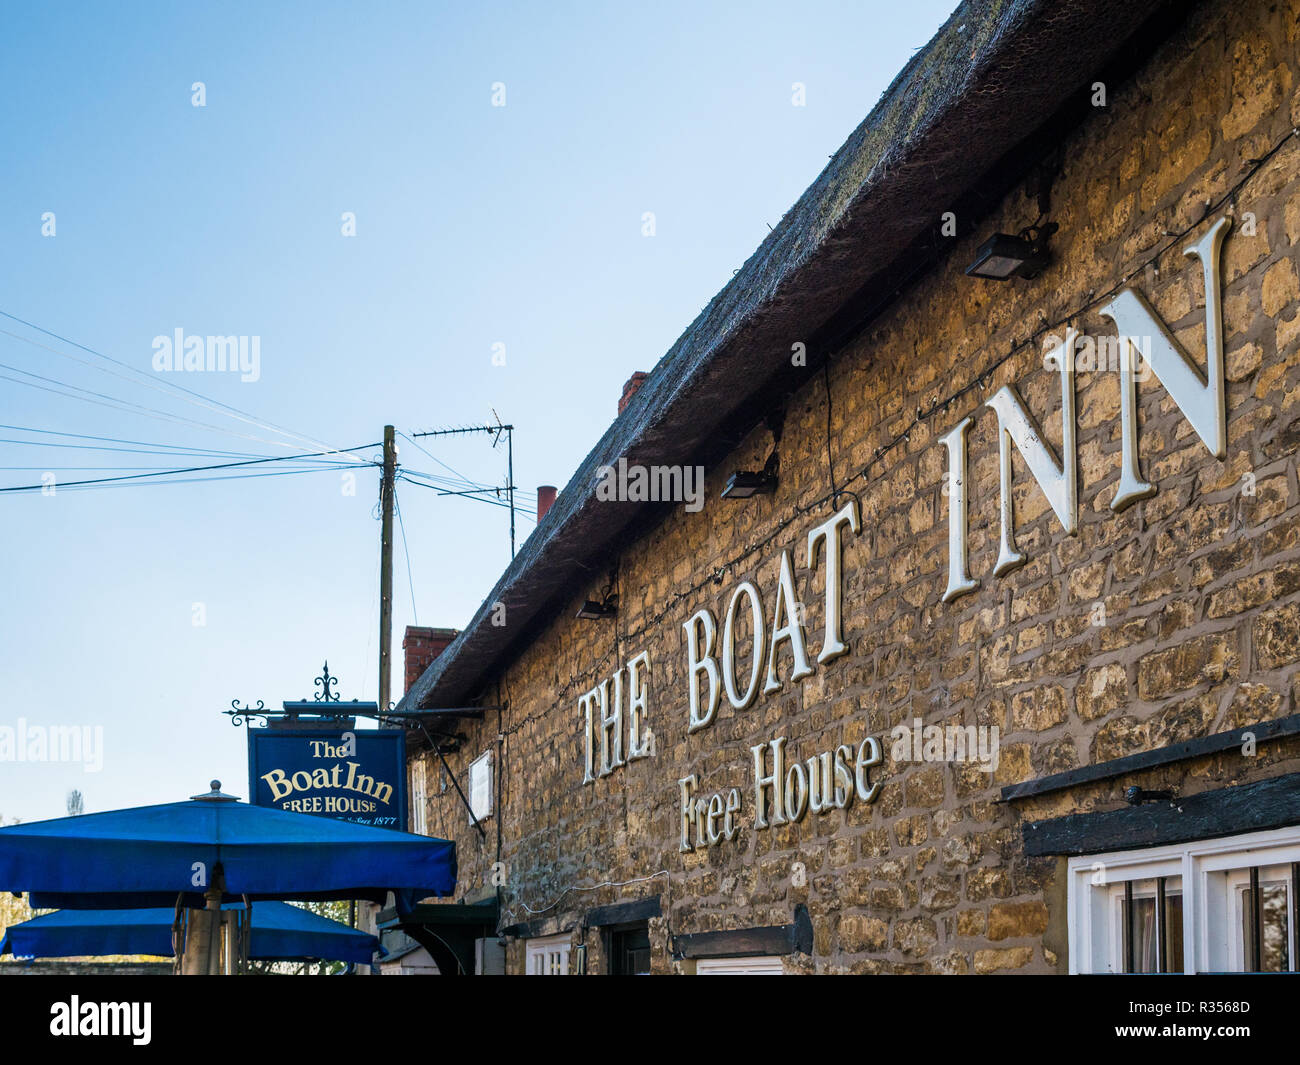 Stoke Bruerne UK October 31 2018: boat inn pub and restaurant next to canal river in village in northamptonshire, england. - Stock Image